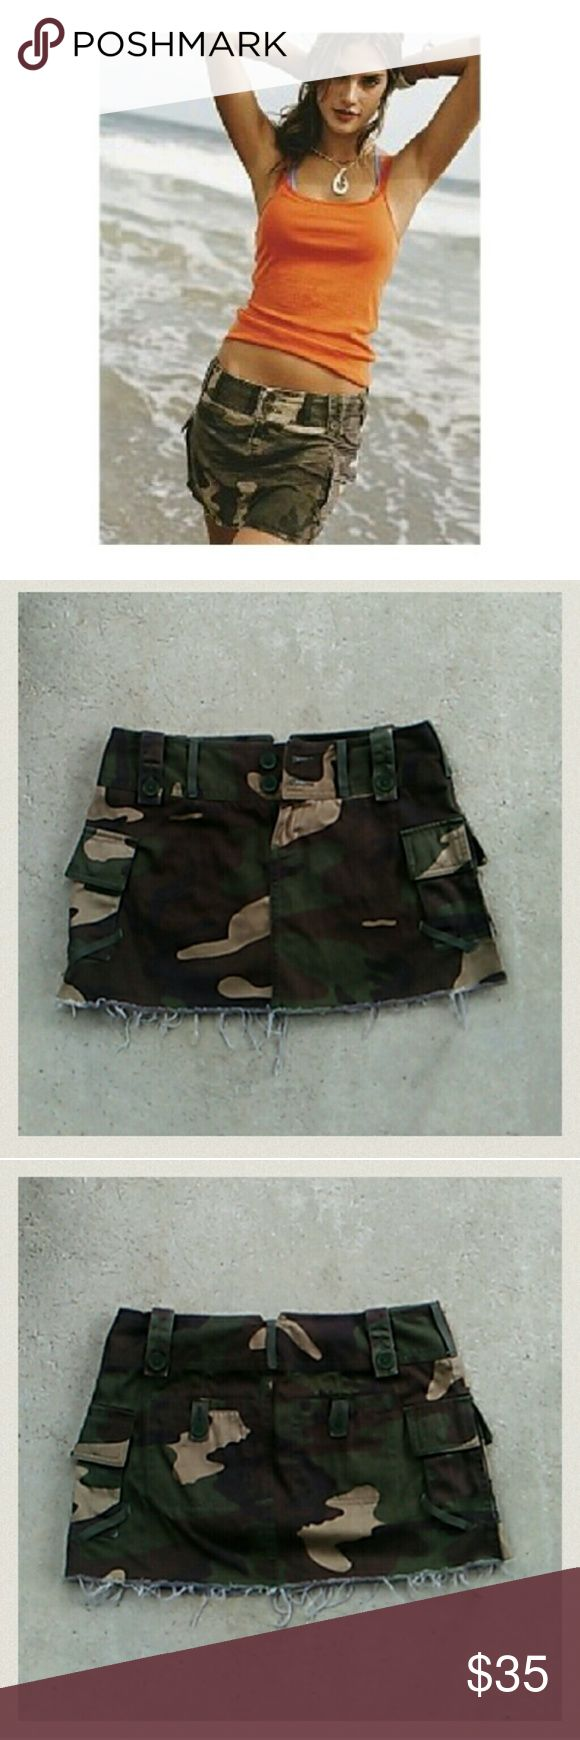 NWOT LONDON LINE BY VICTORIA'S SECRET CAMO SKIRT -NWOT CAMO MINI SKIRT BY VICTORIA'S SECRET LONDON JEAN LINE  -PERFECT FOR SUMMER!!!!  -TOTALLY CUTE & SEXY WITH HEELS/ SNEAKERS/ SANDALS/ FLIP FLOPS OR BAREFOOT!!!! Victoria's Secret Skirts Mini